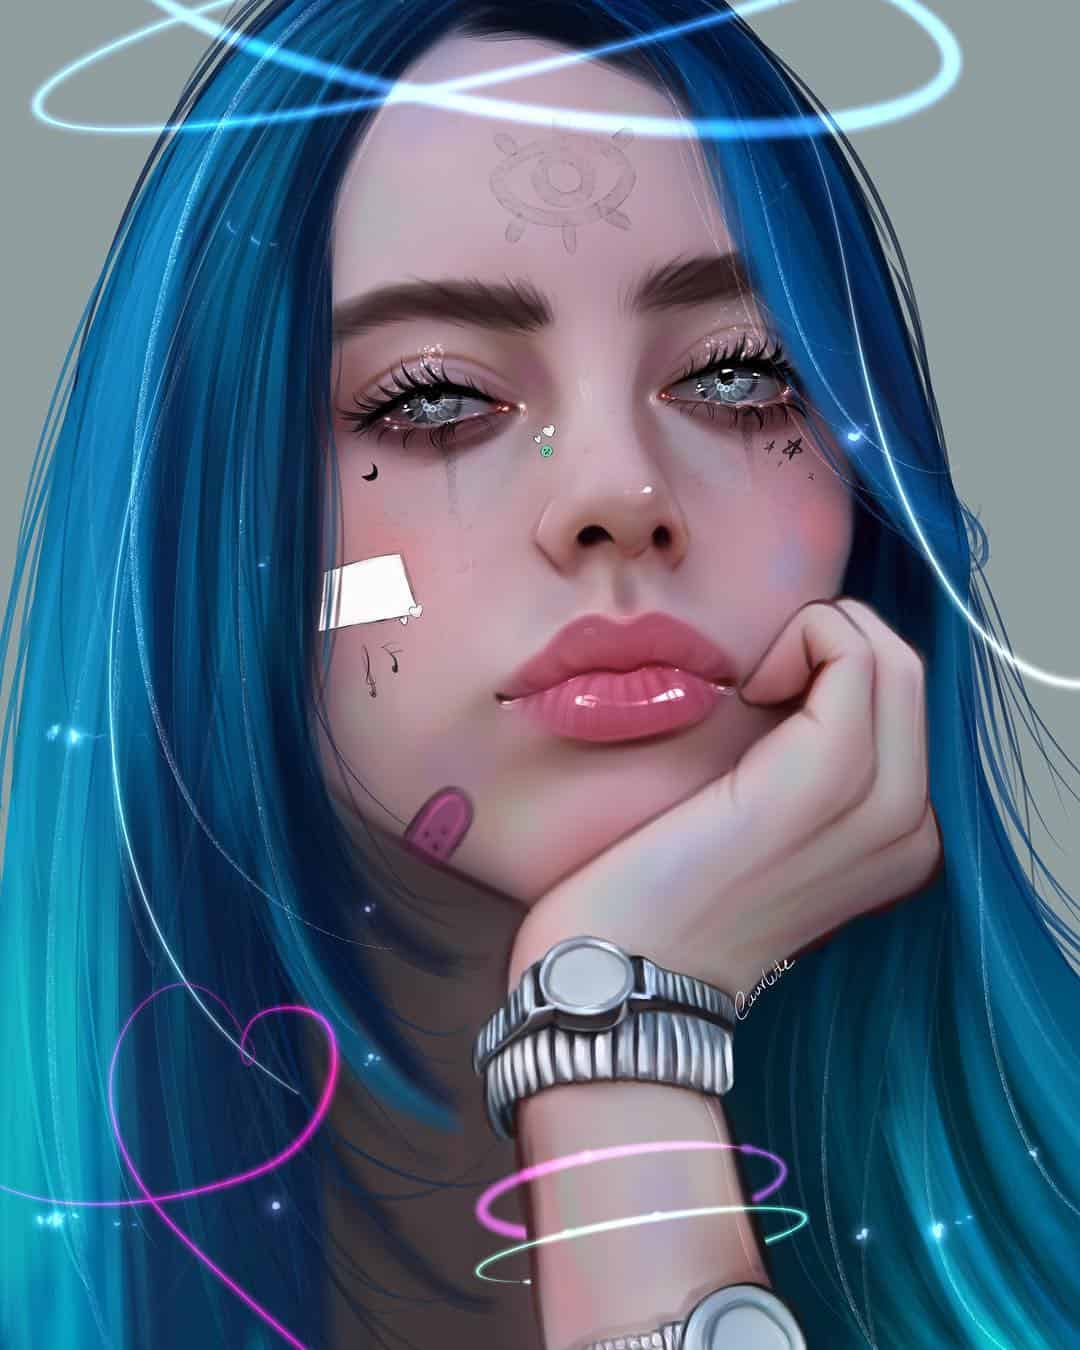 Digital artist Ruby Caurlette